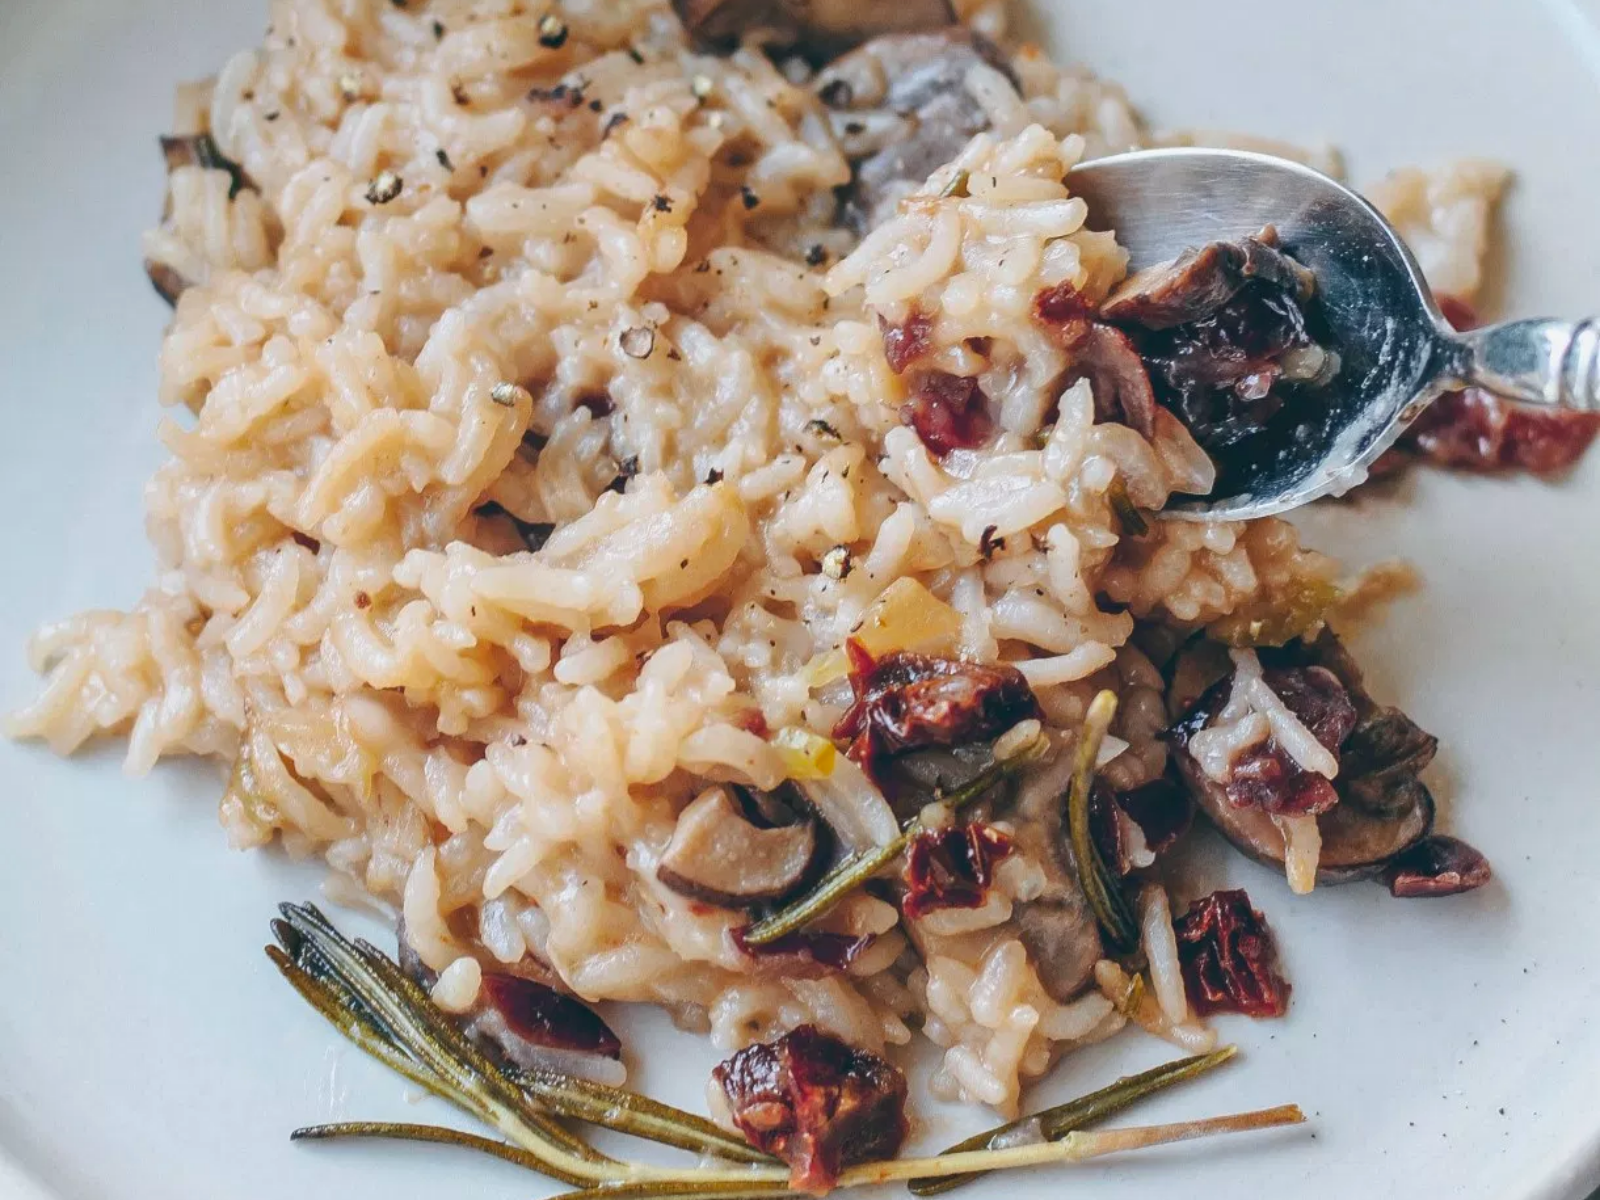 baked mushroom risotto with rosemary and dried cranberries